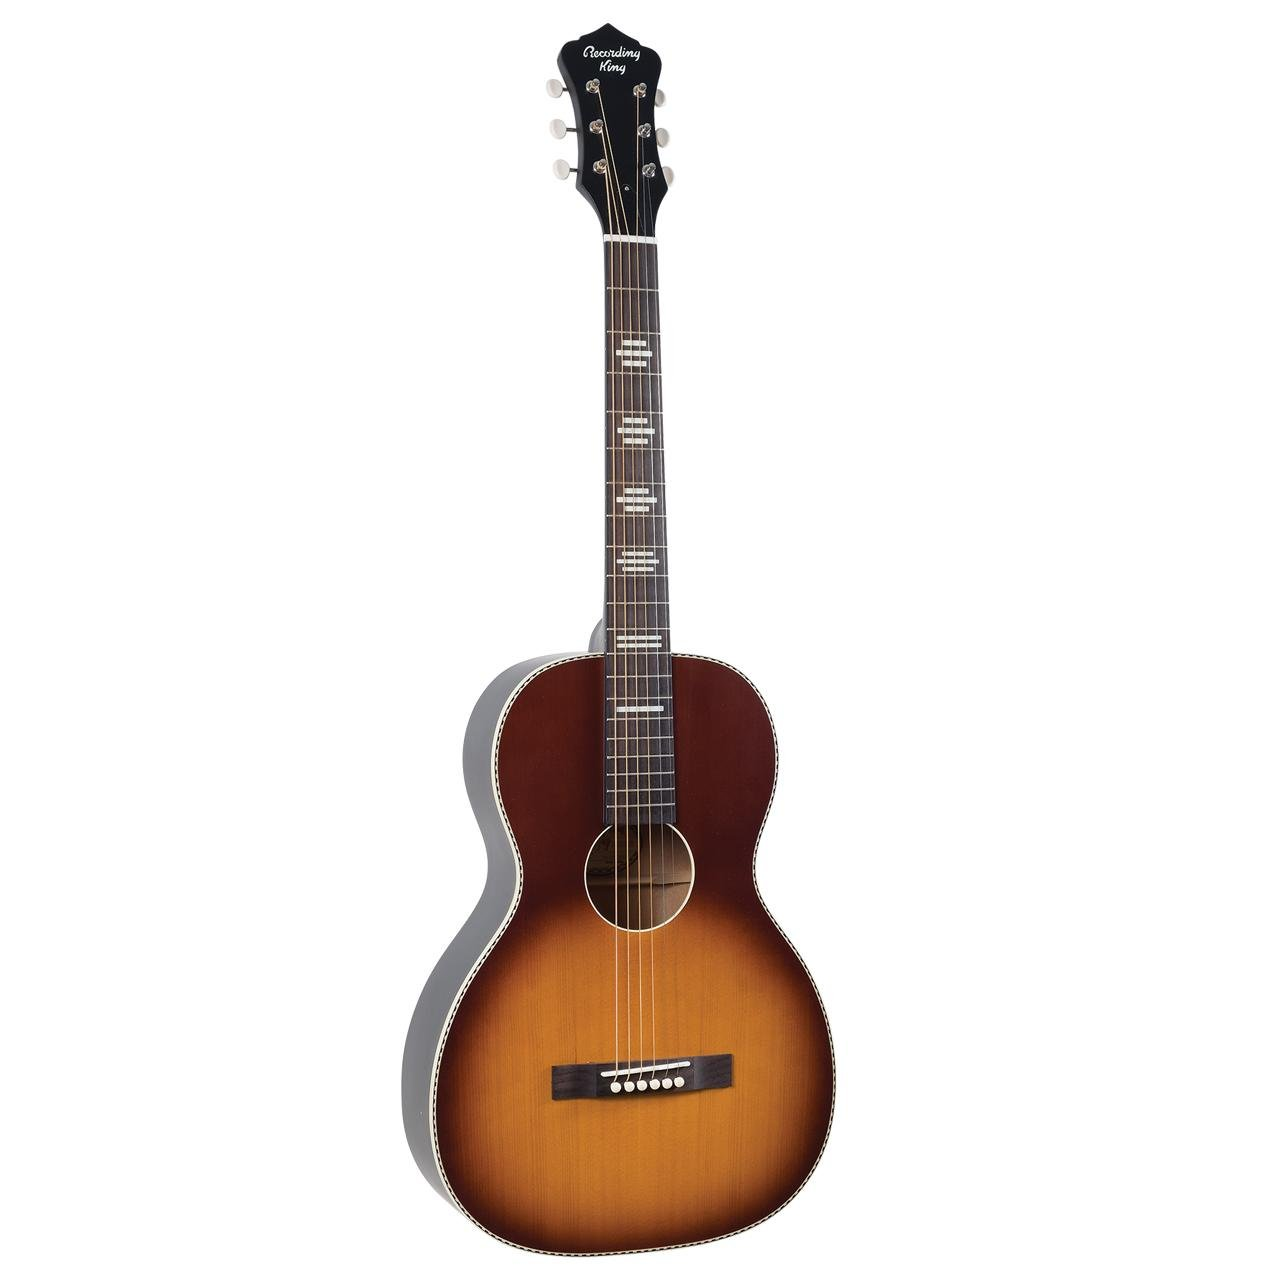 Recording King Dirty 30s series 7 Parlor Acoustic Guitar - Sunburst